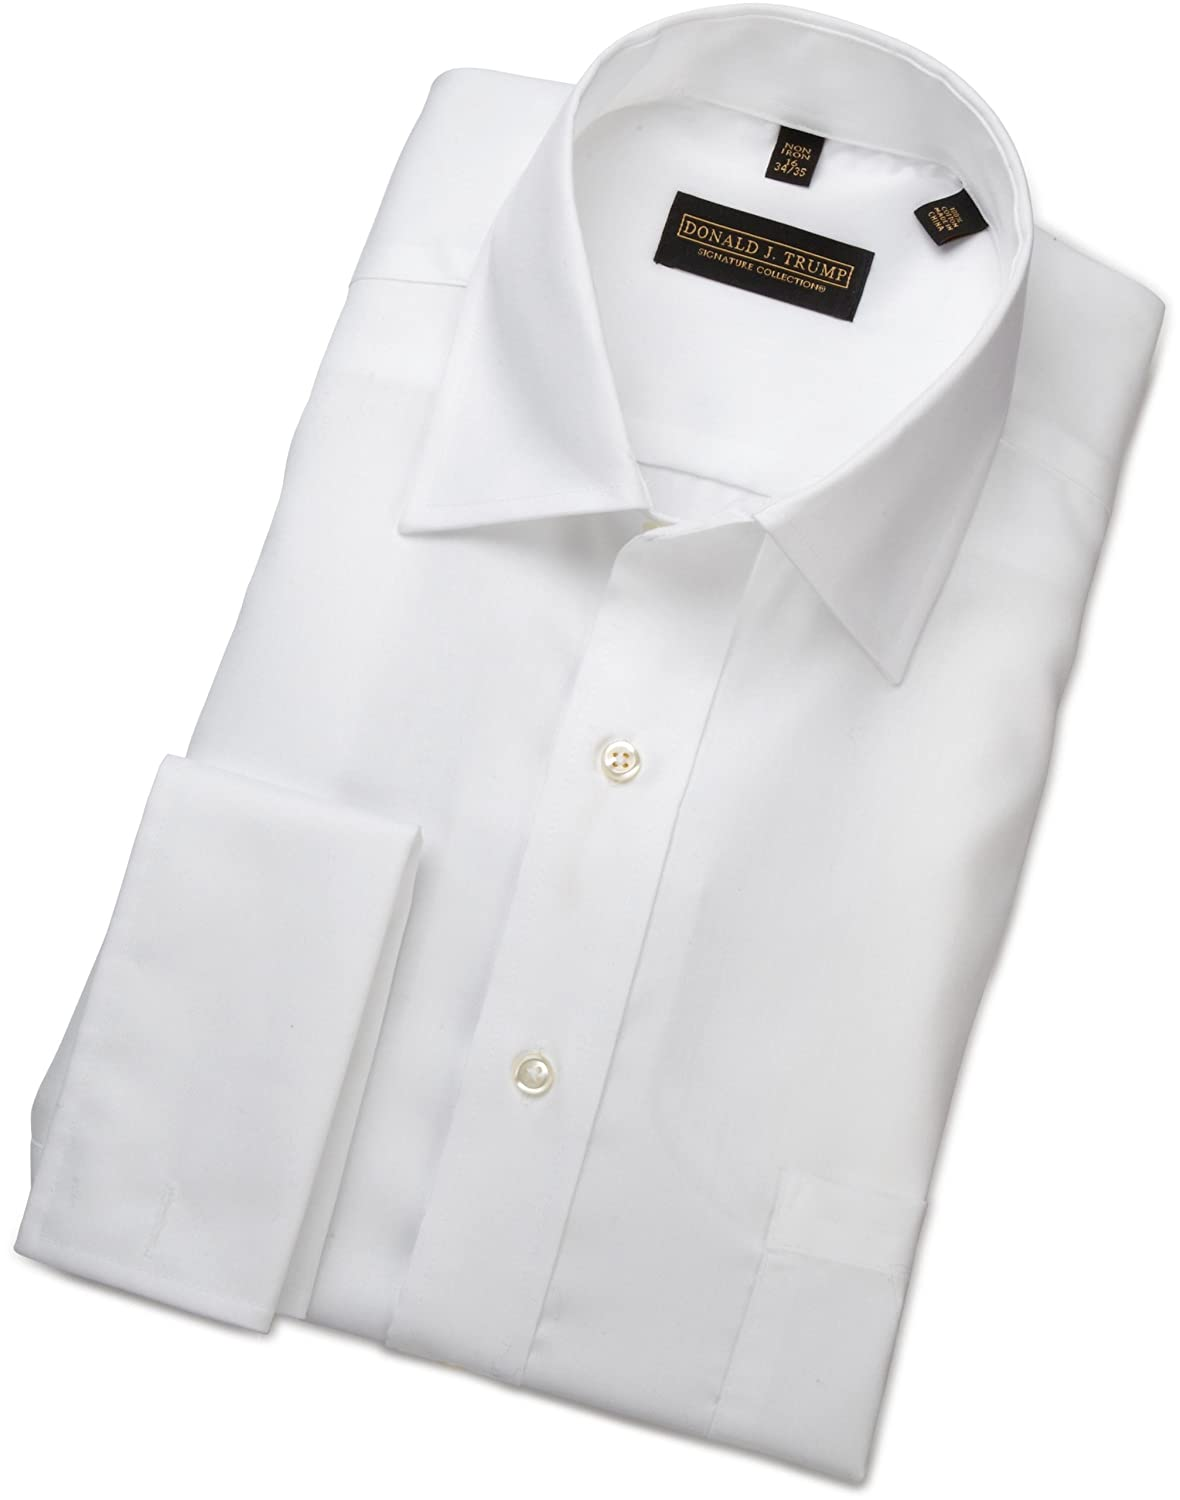 Donald Trump French Cuff Dress Shirt (White)